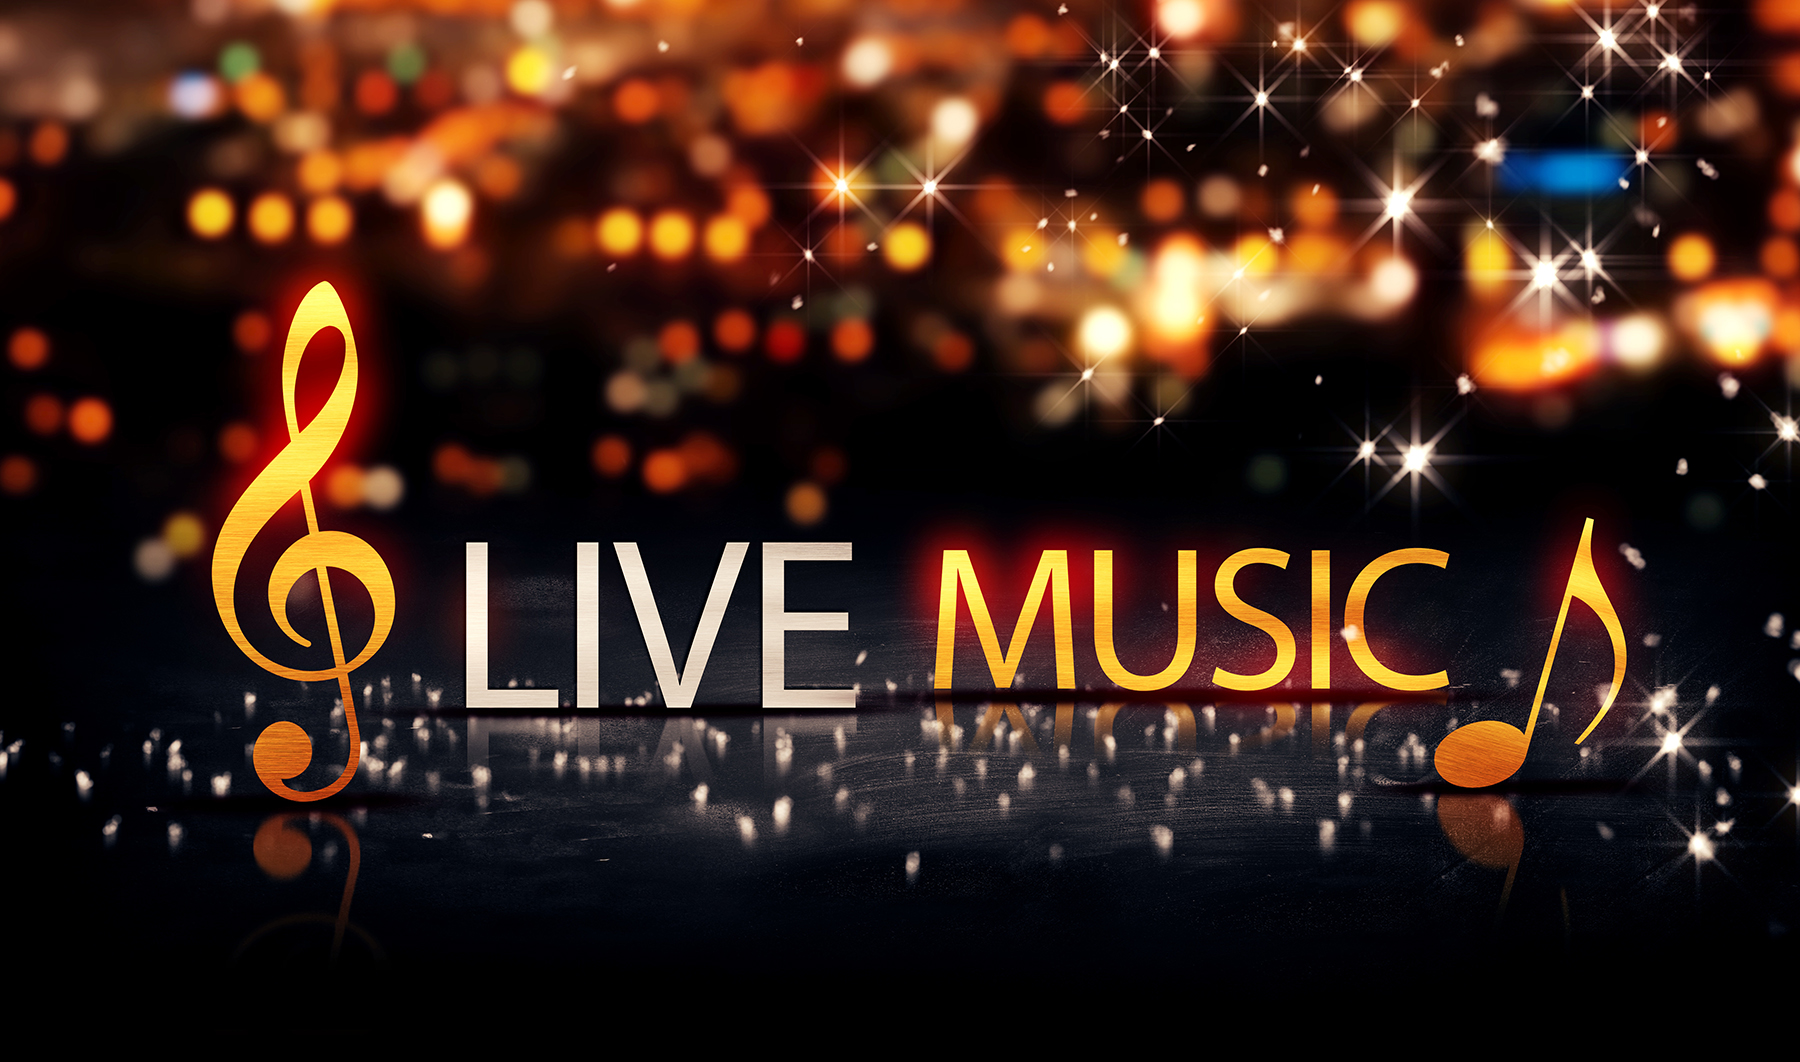 Live Music Gold Silver City Bokeh Star Shine Yellow Background